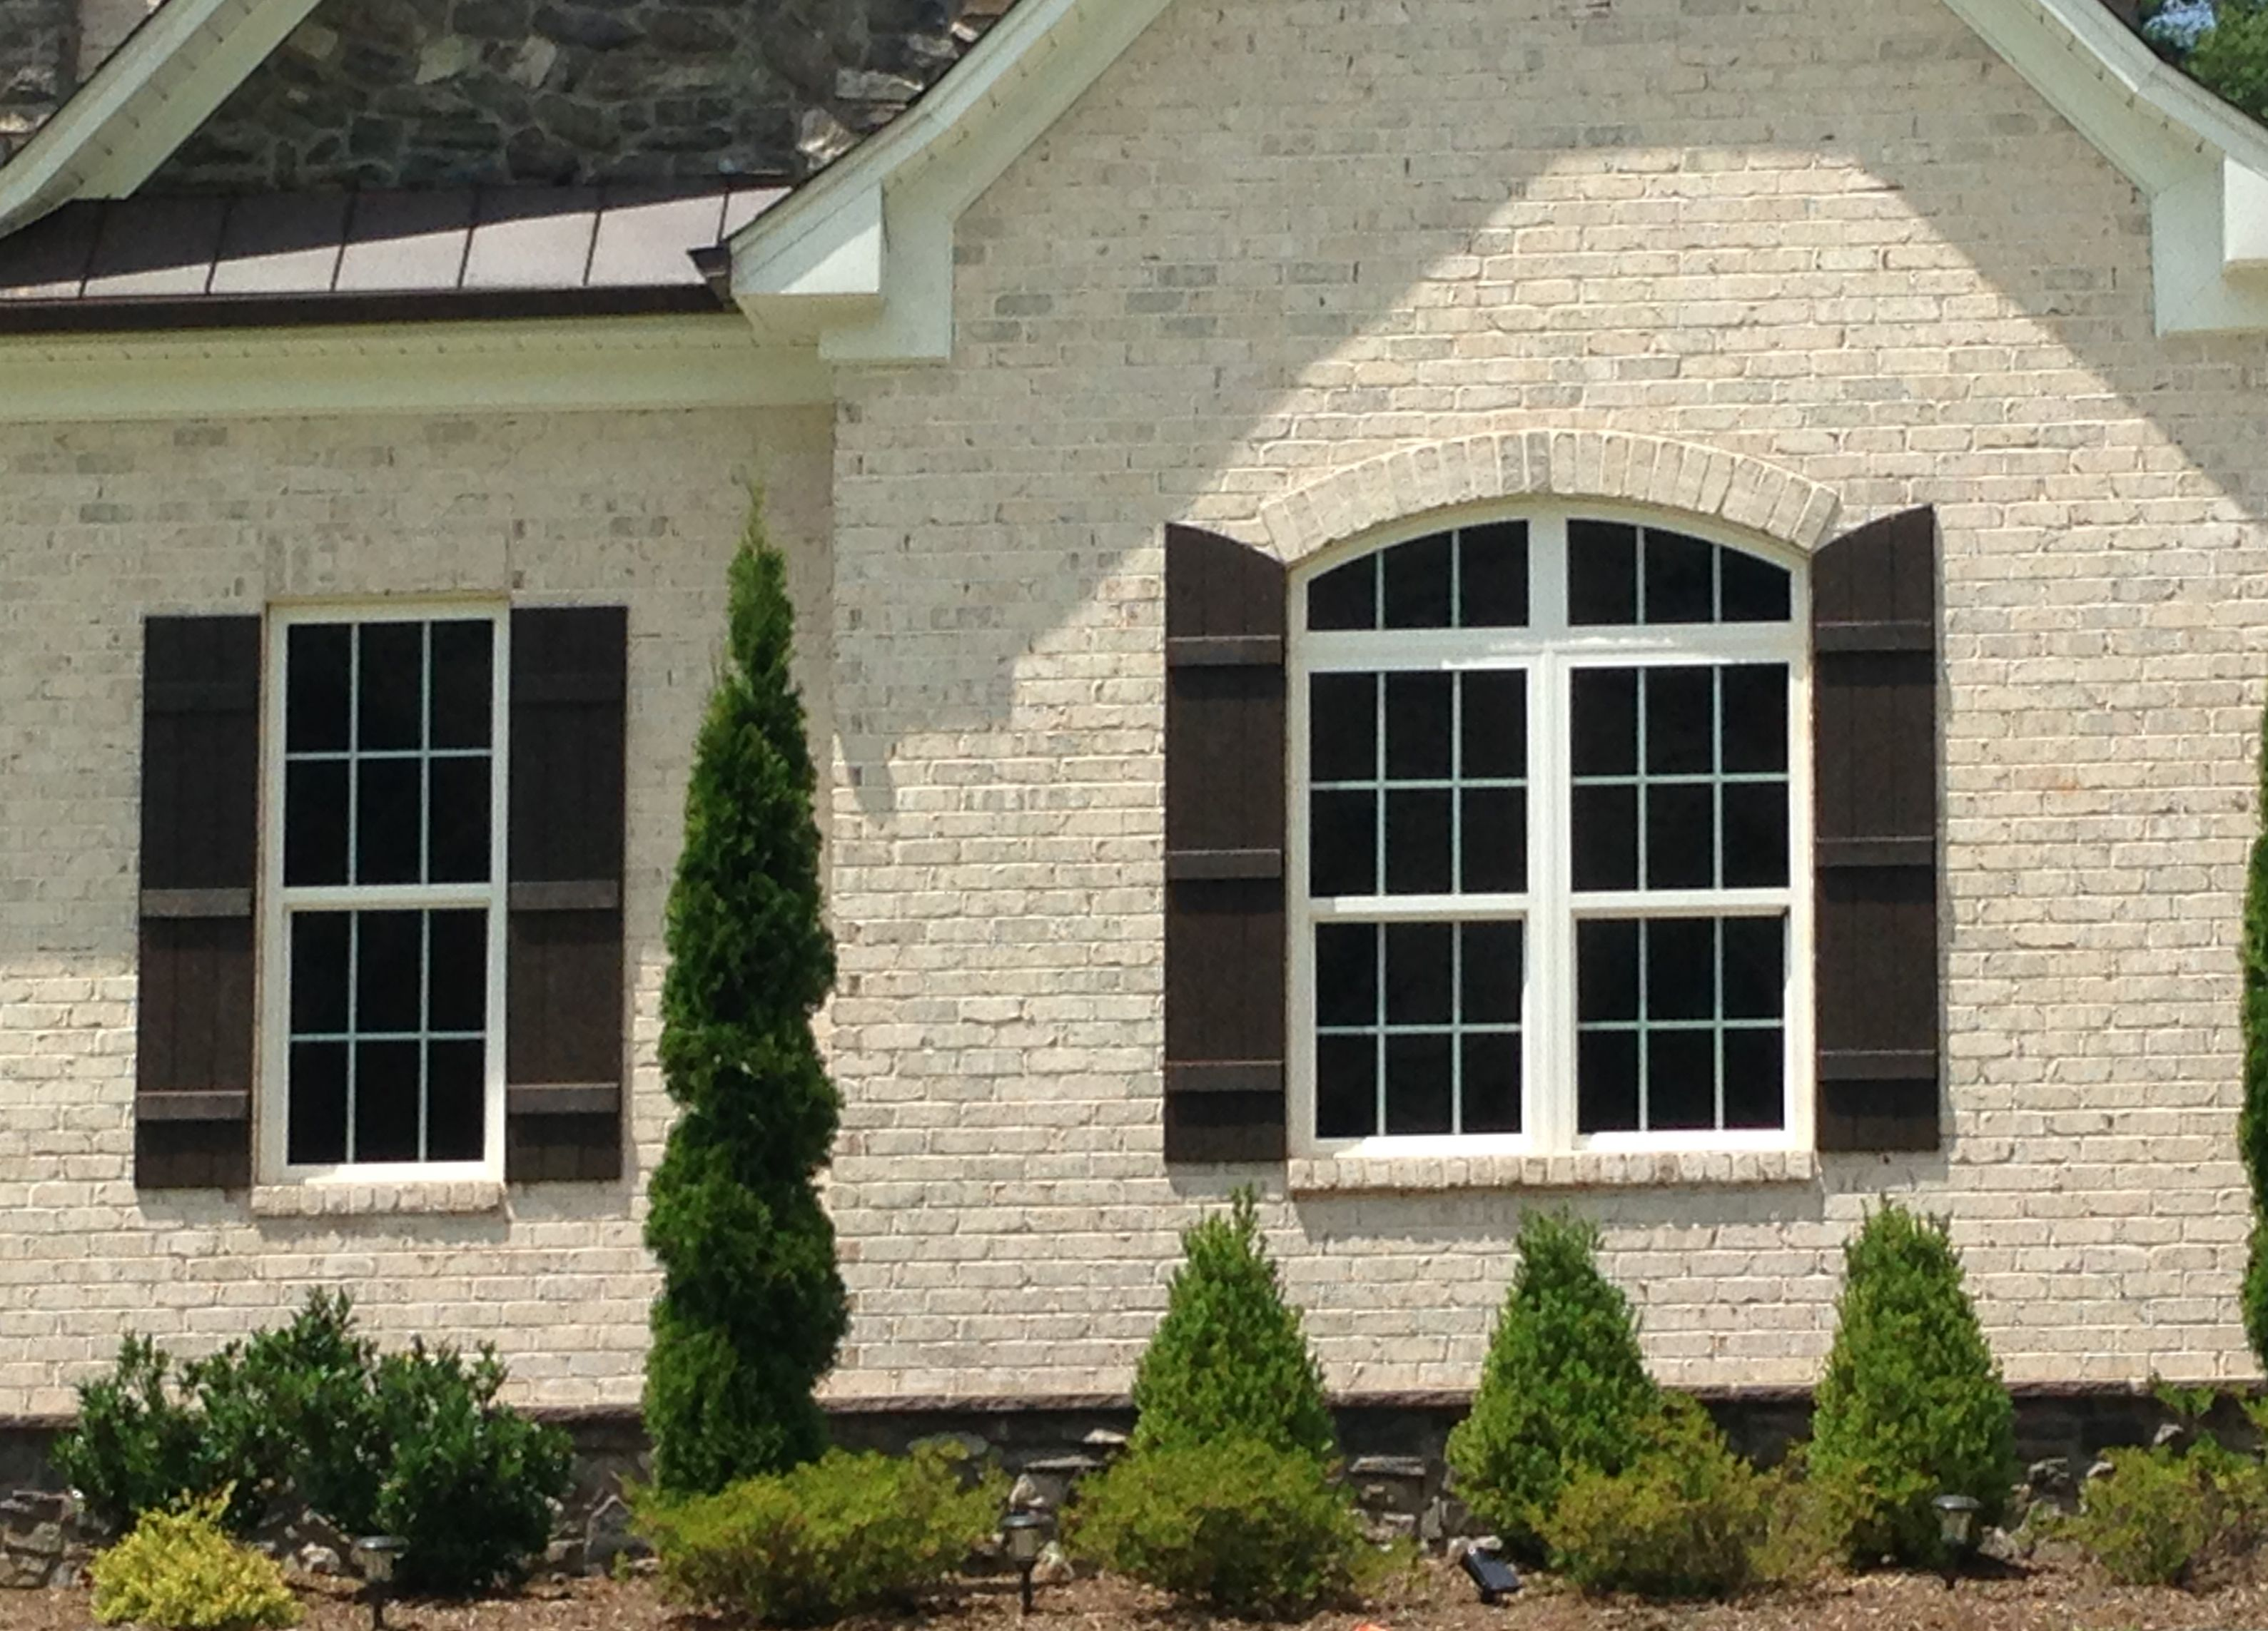 White chesapeake pearl brick with white mortar looks great for Brick looking siding